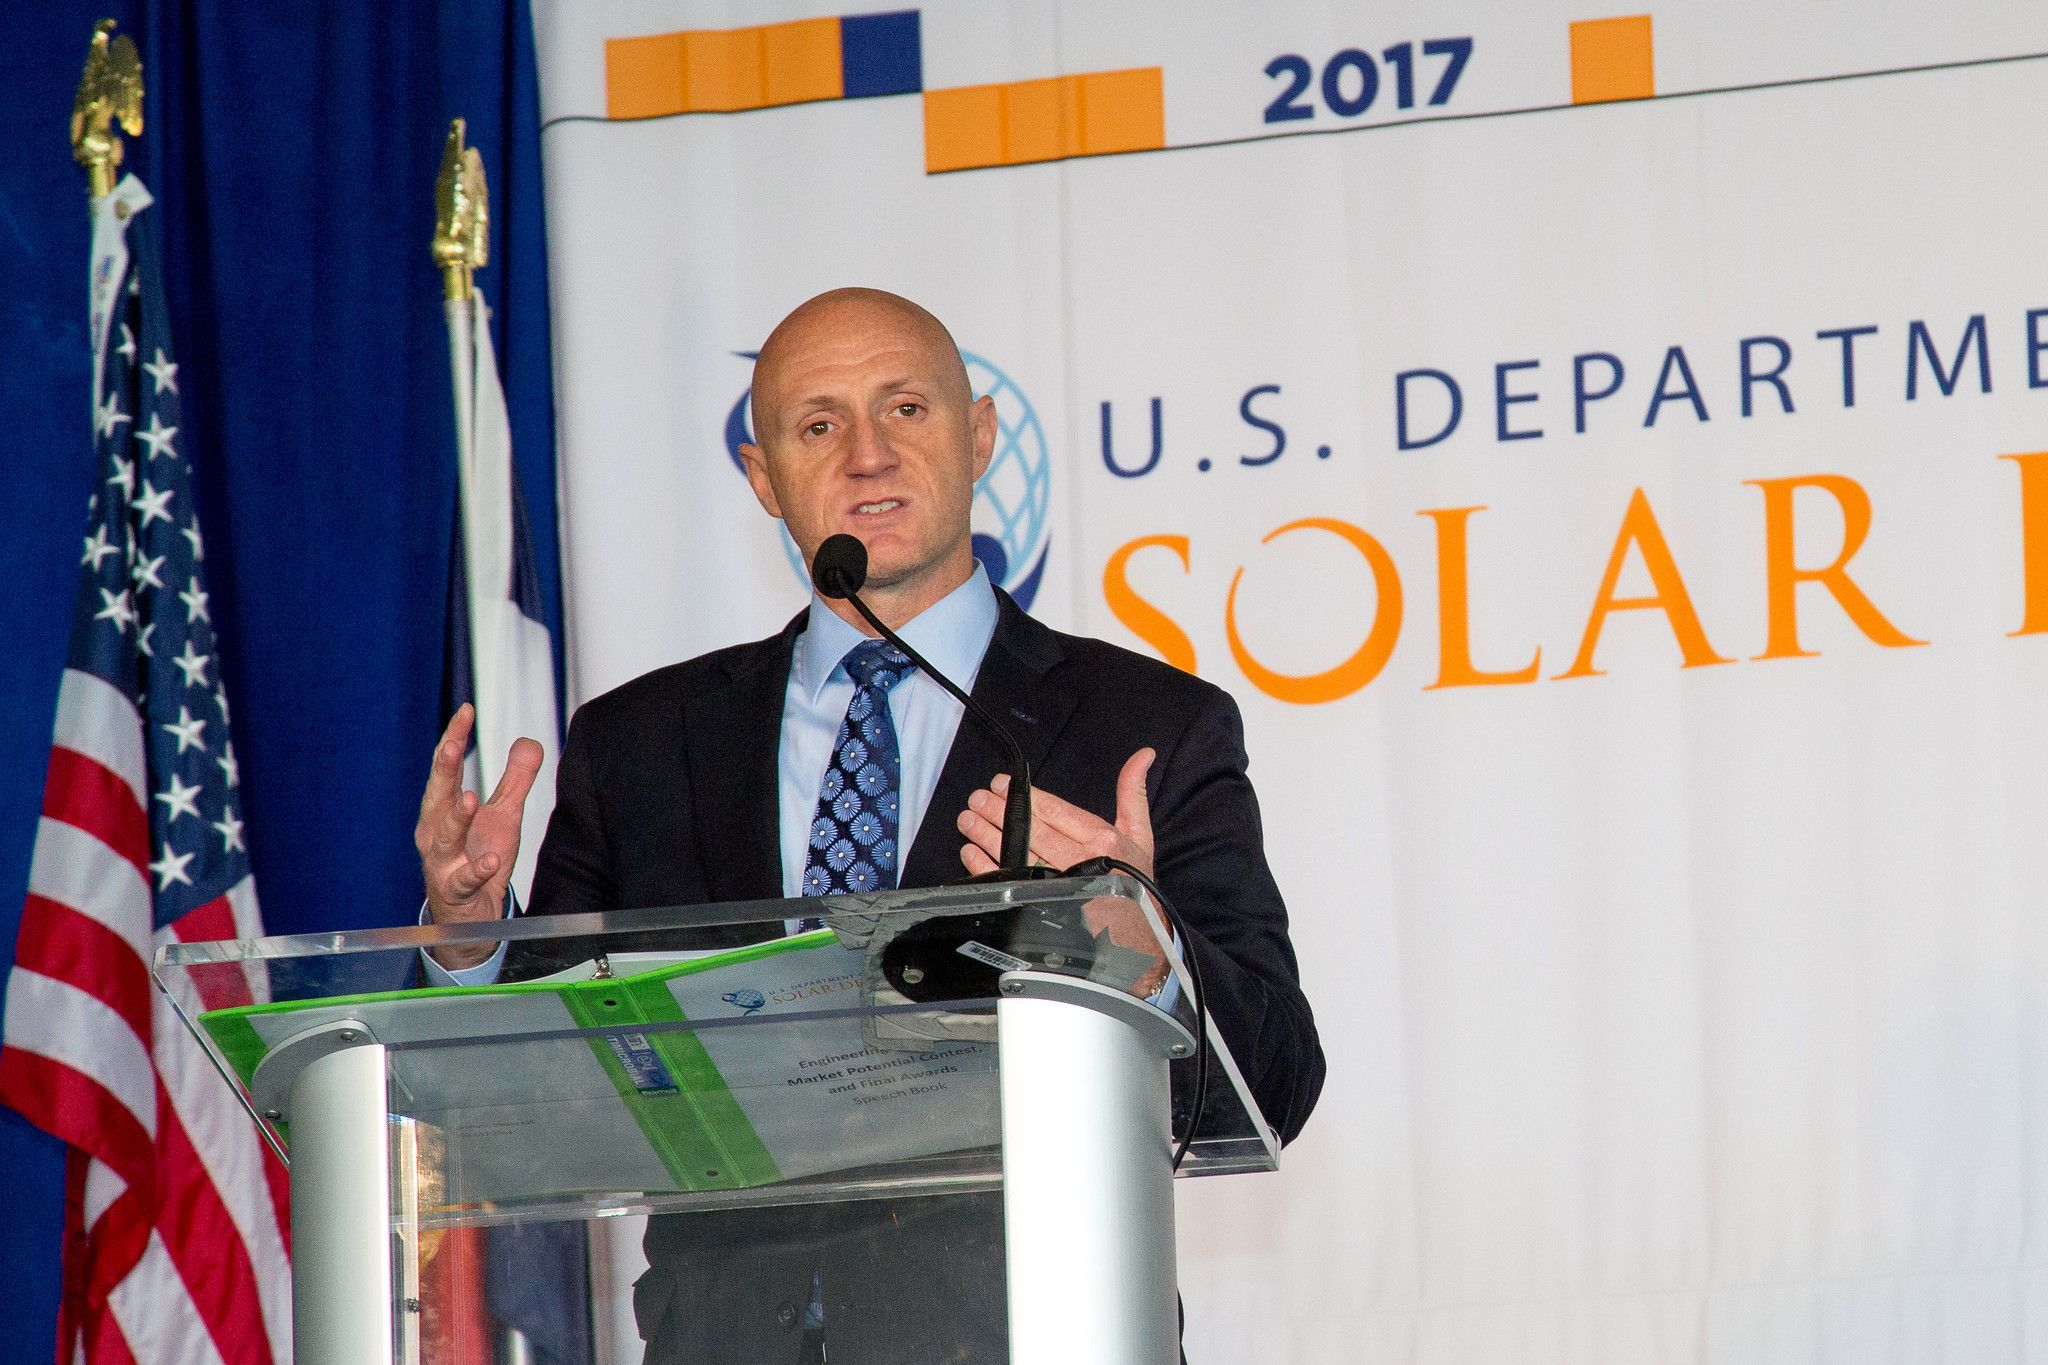 How is the DOE deploying capital to support clean energy innovation under President Trump?